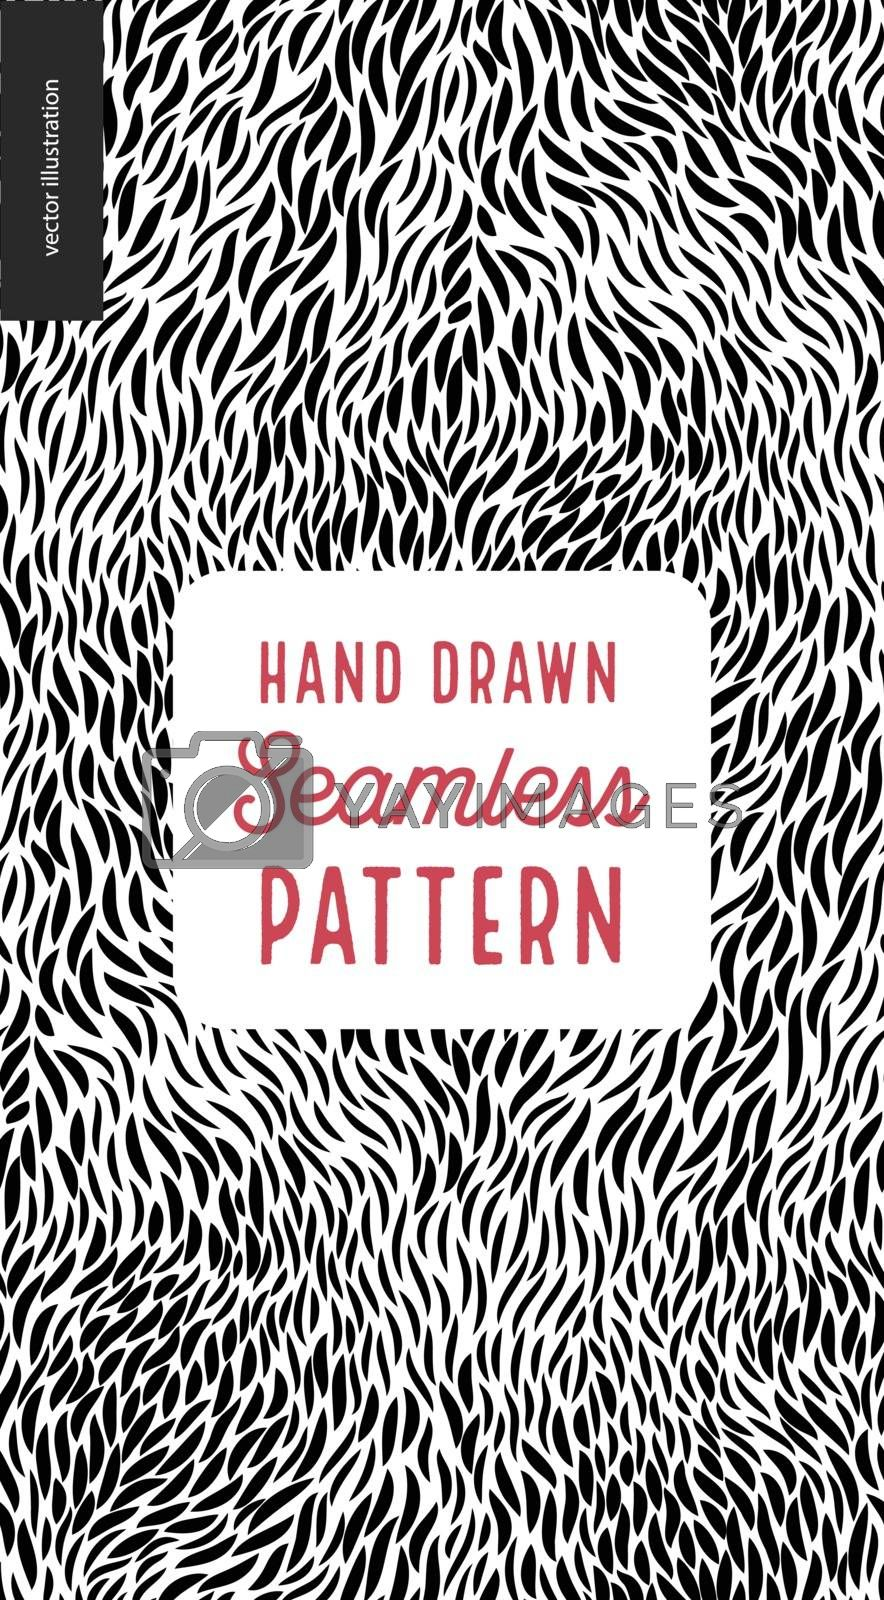 Hand drawn black and white pattern. Fur or leaves seamless black and white pattern